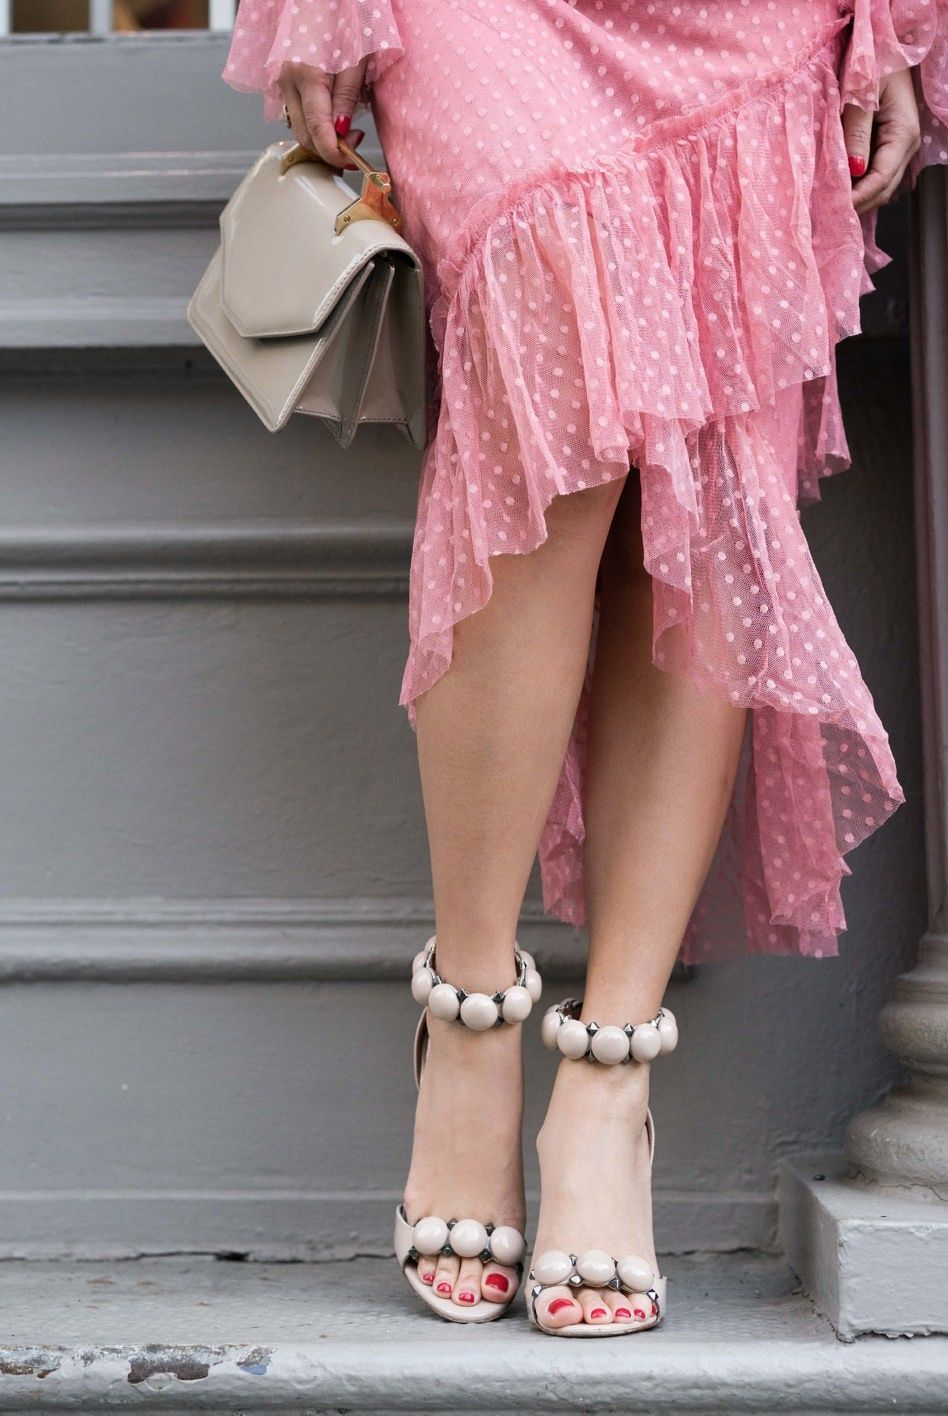 0b01e64502bf Shades of Blush    Pink dress   Nude sandals - Wendy s LookbookWendy s  Lookbook